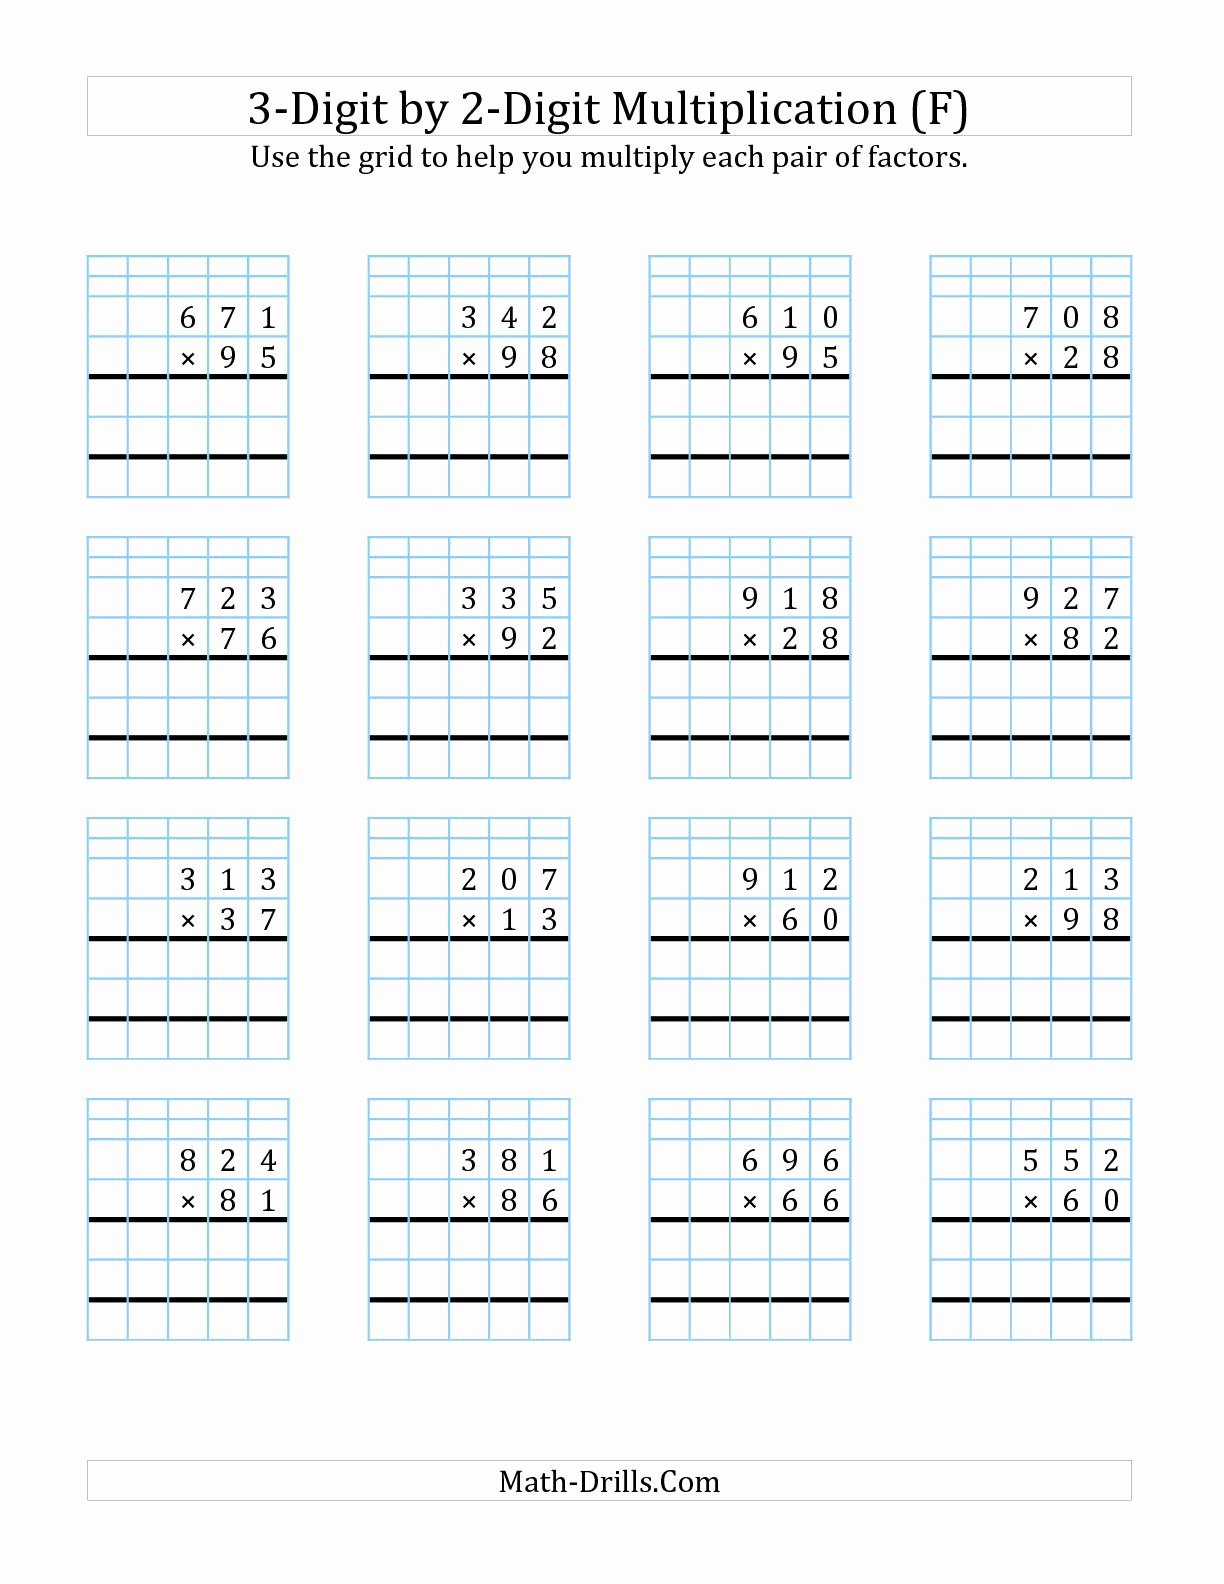 3 Digit by 3 Digit Multiplication Worksheets with Grids Unique the 3 Digit by 2 Digit Multiplication with Grid Support F